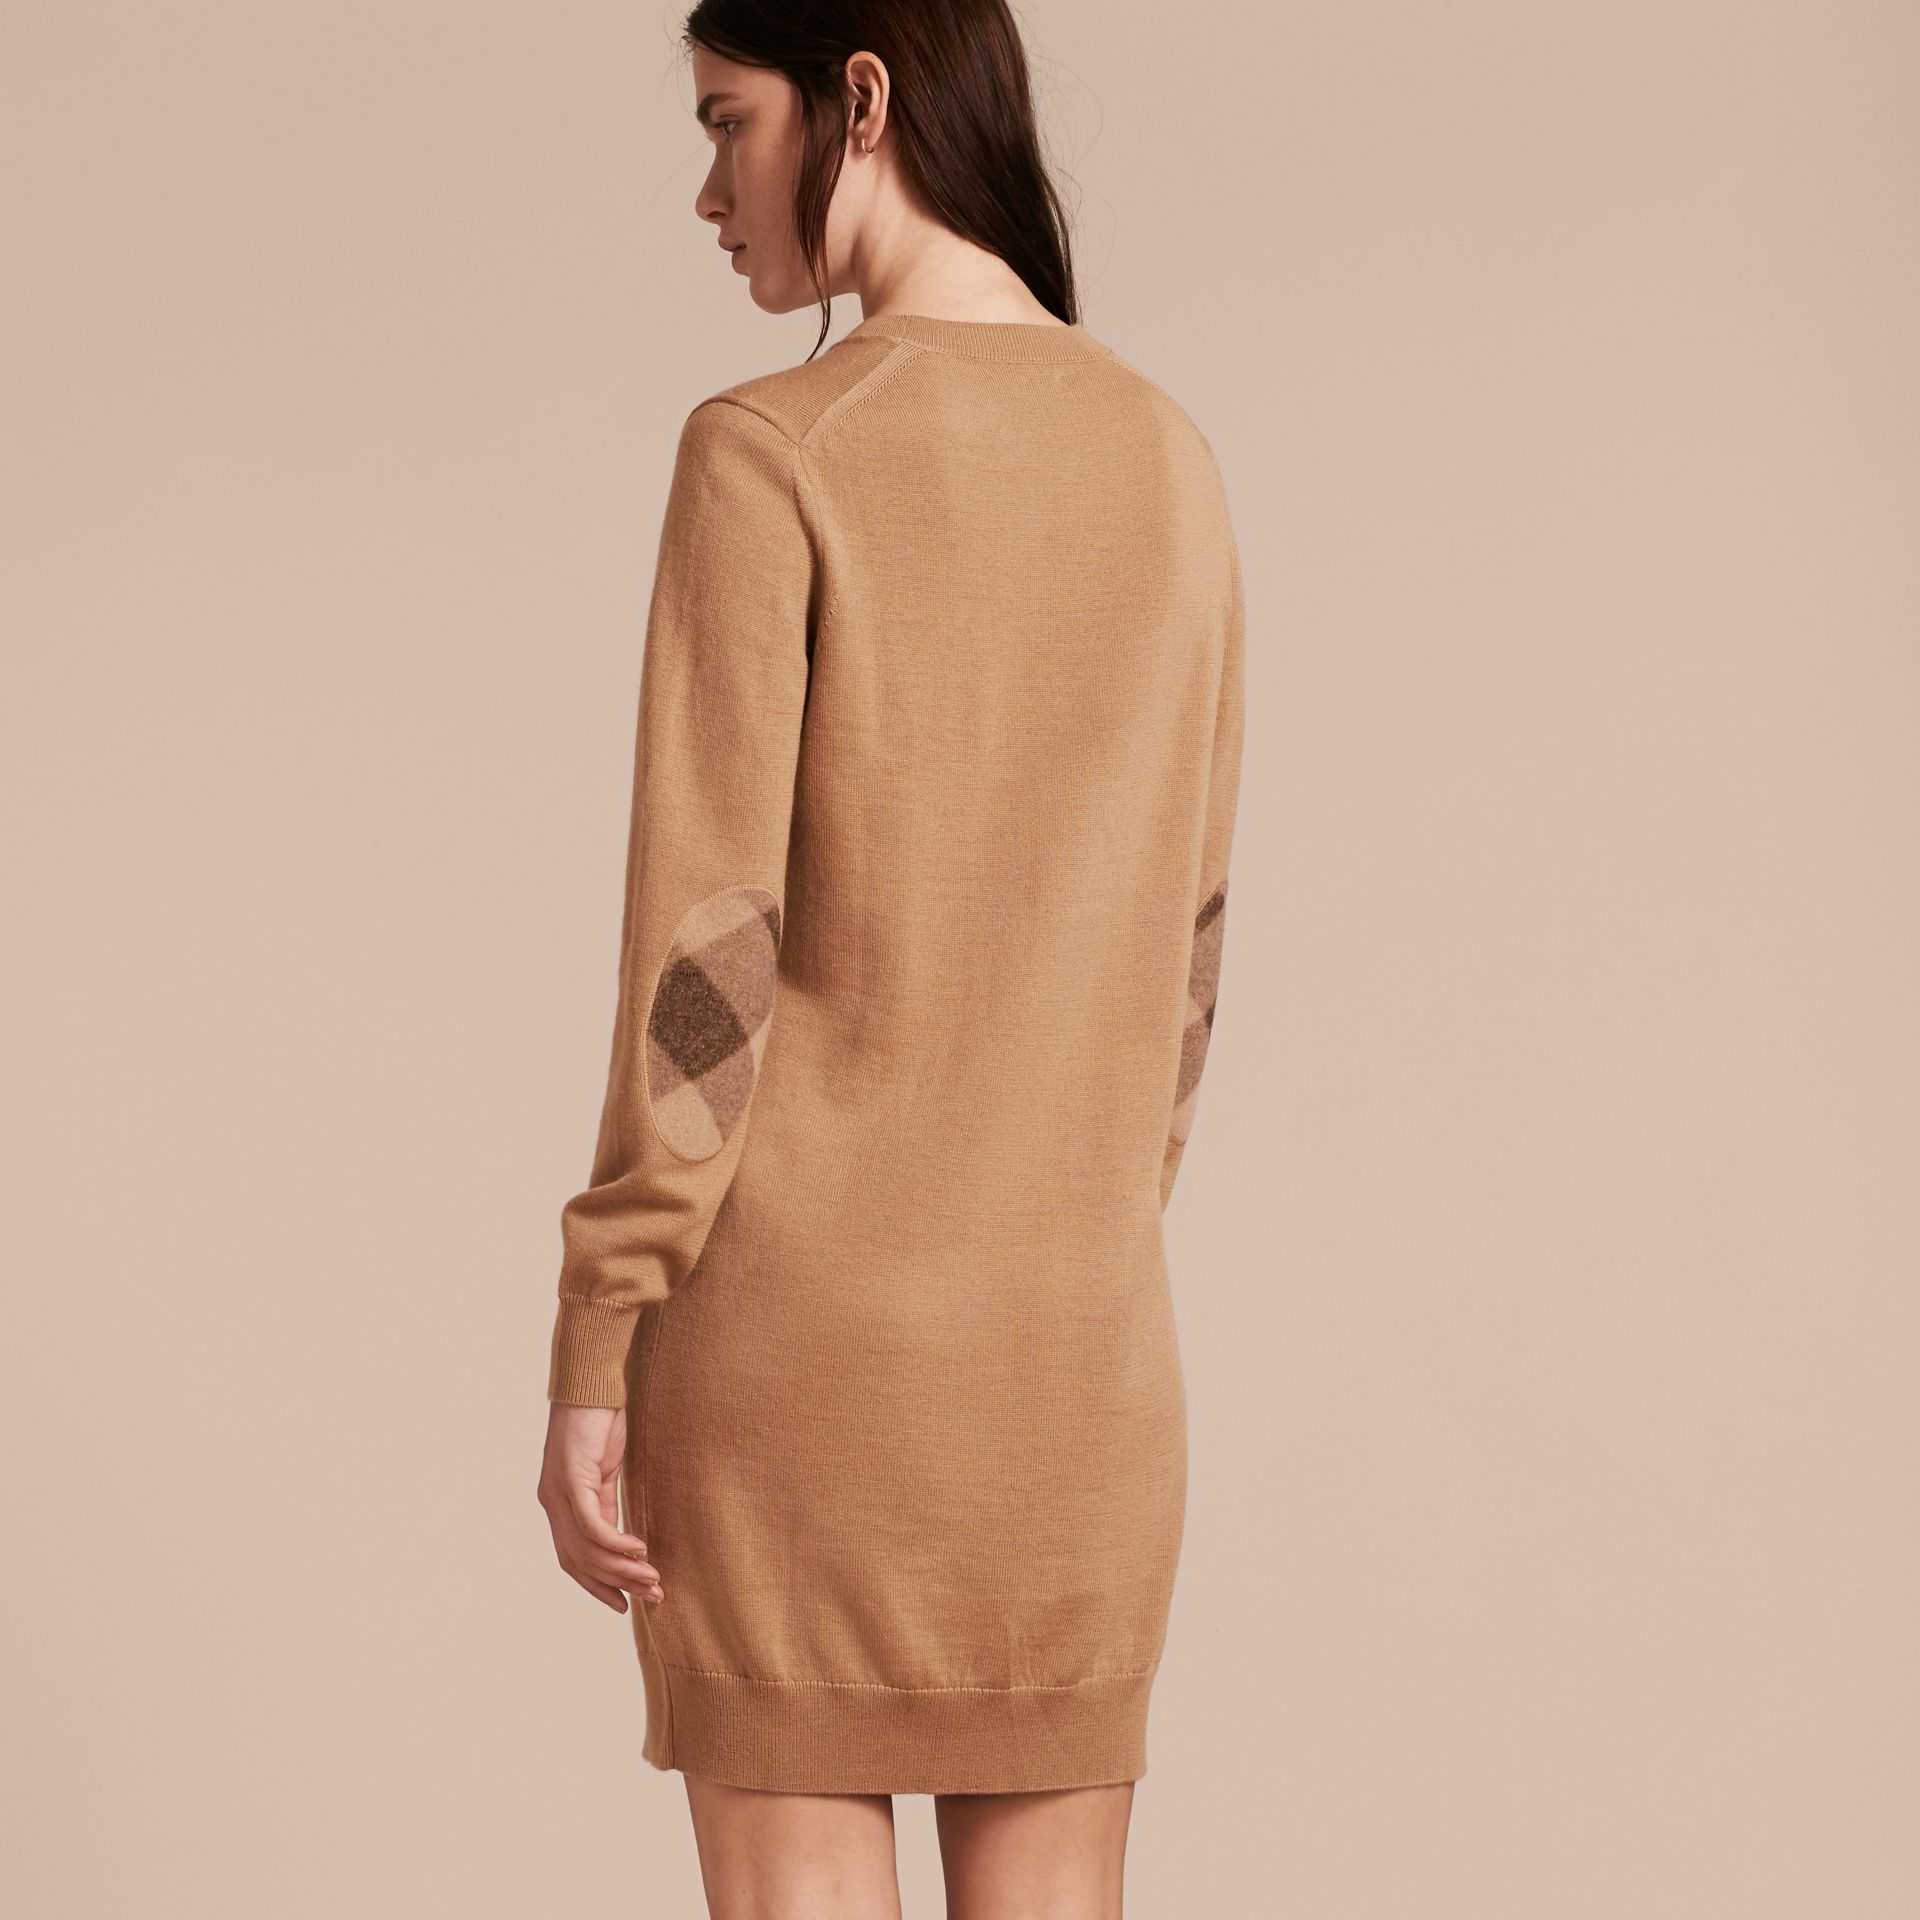 Check Elbow Detail Merino Wool Sweater Dress in Camel - Women | Burberry - gallery image 3